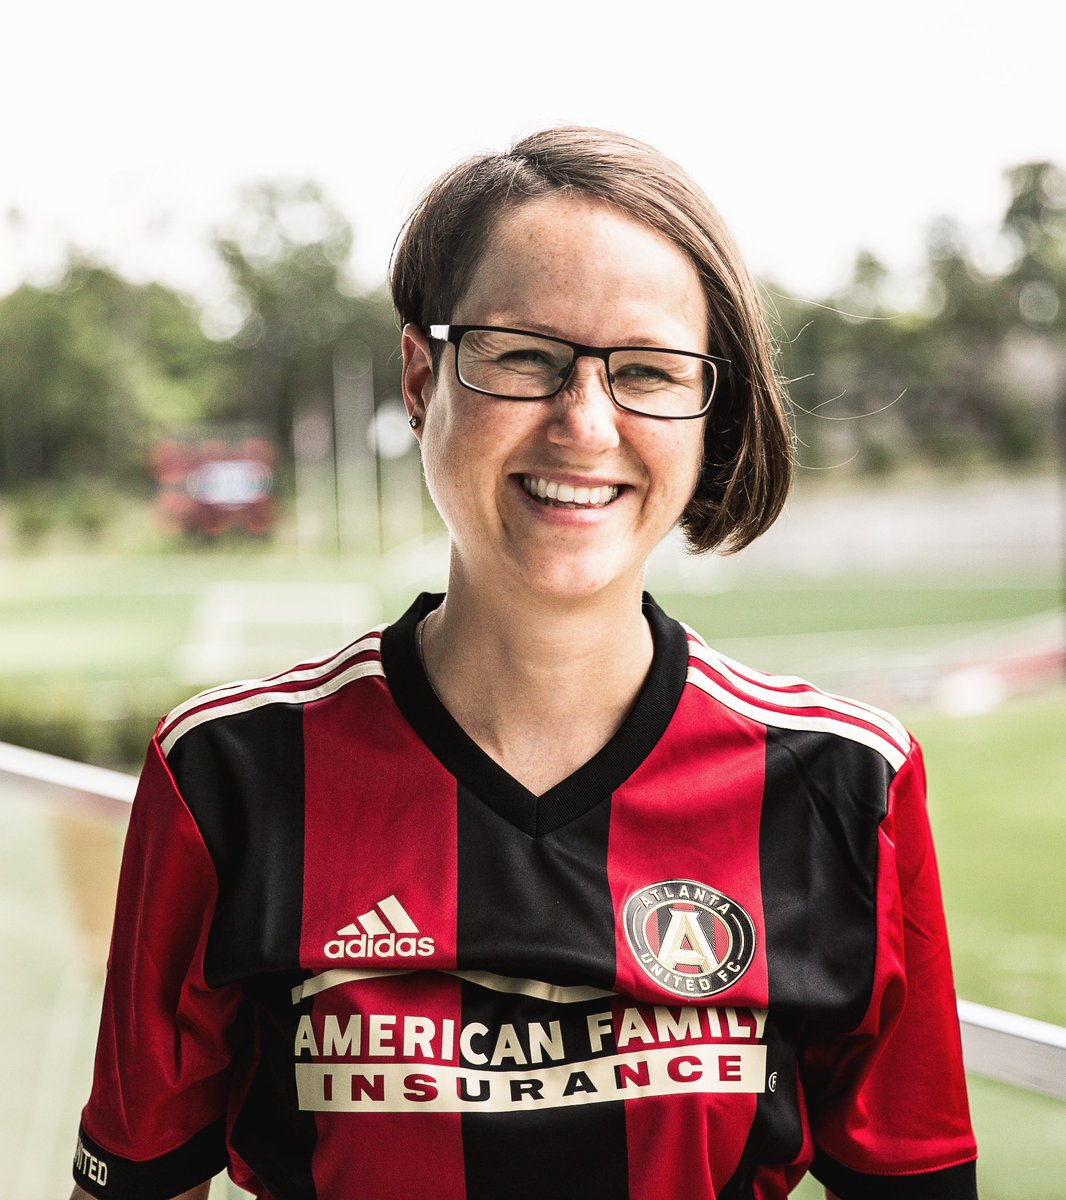 Congratulations @lucyrushton12  You were brilliant @CardiffCityFC All the best with the new role RT @ATLUTD: Paving the way.  This #WomensHistoryMonth, we celebrate our Head of Technical Scouting, Lucy Rushton: